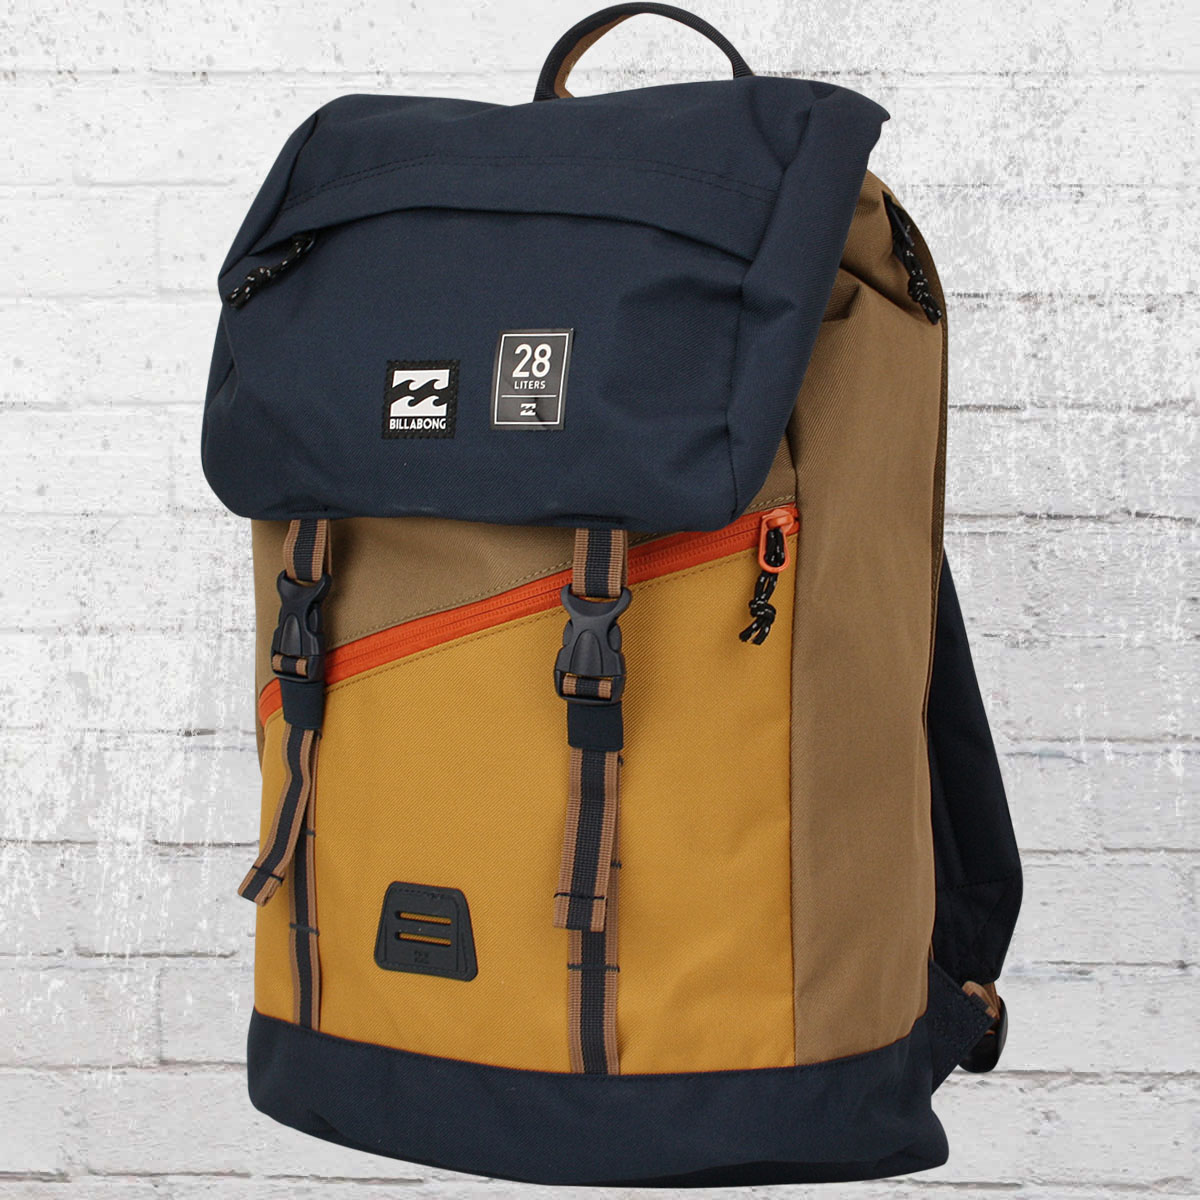 jetzt bestellen billabong track pack trekking rucksack mit laptop fach beige blau krasse. Black Bedroom Furniture Sets. Home Design Ideas